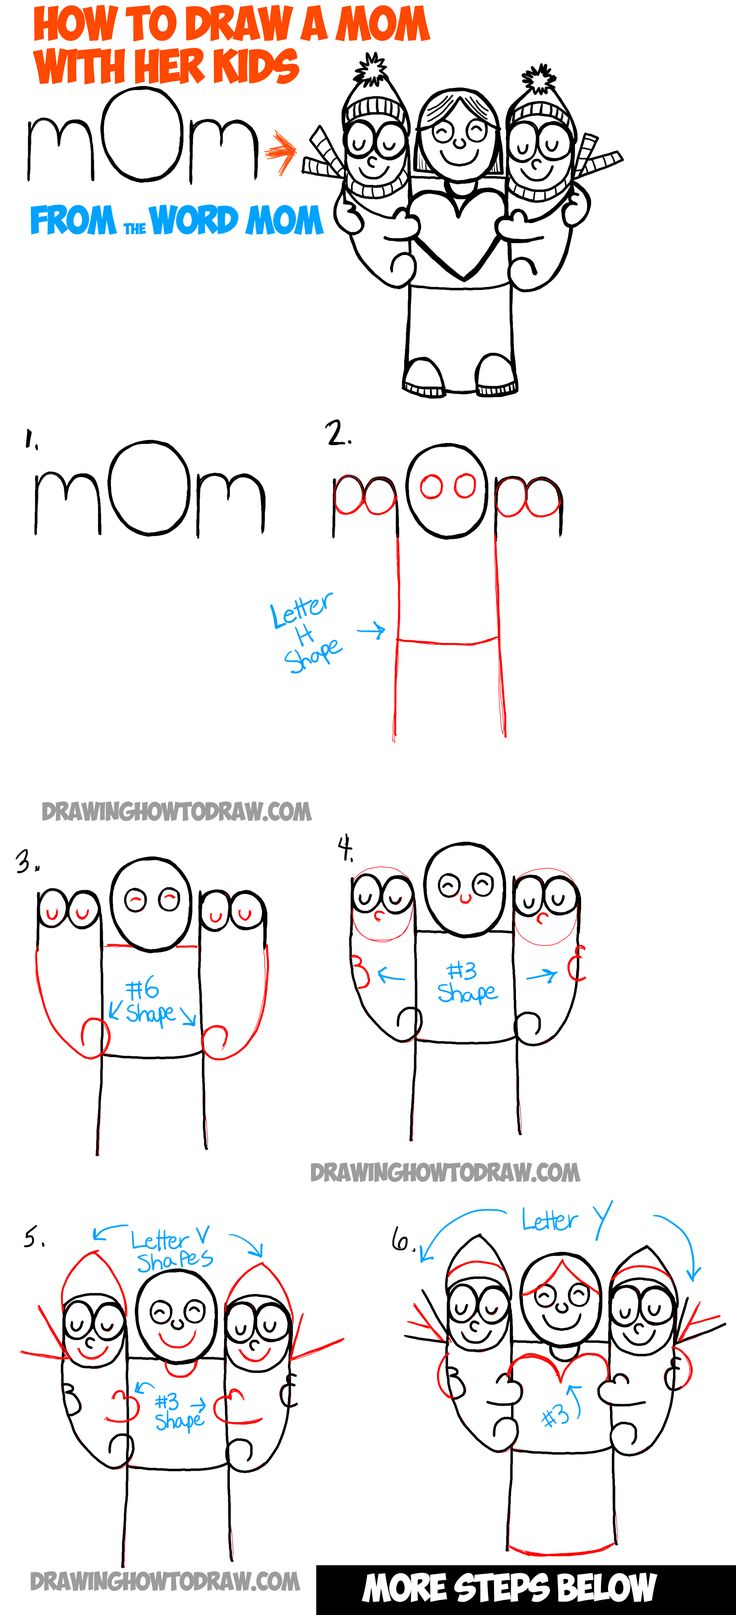 How to Draw Cartoon Mom and Kids from the Word Mom - Simple Step by Step Drawing Lesson for Kids